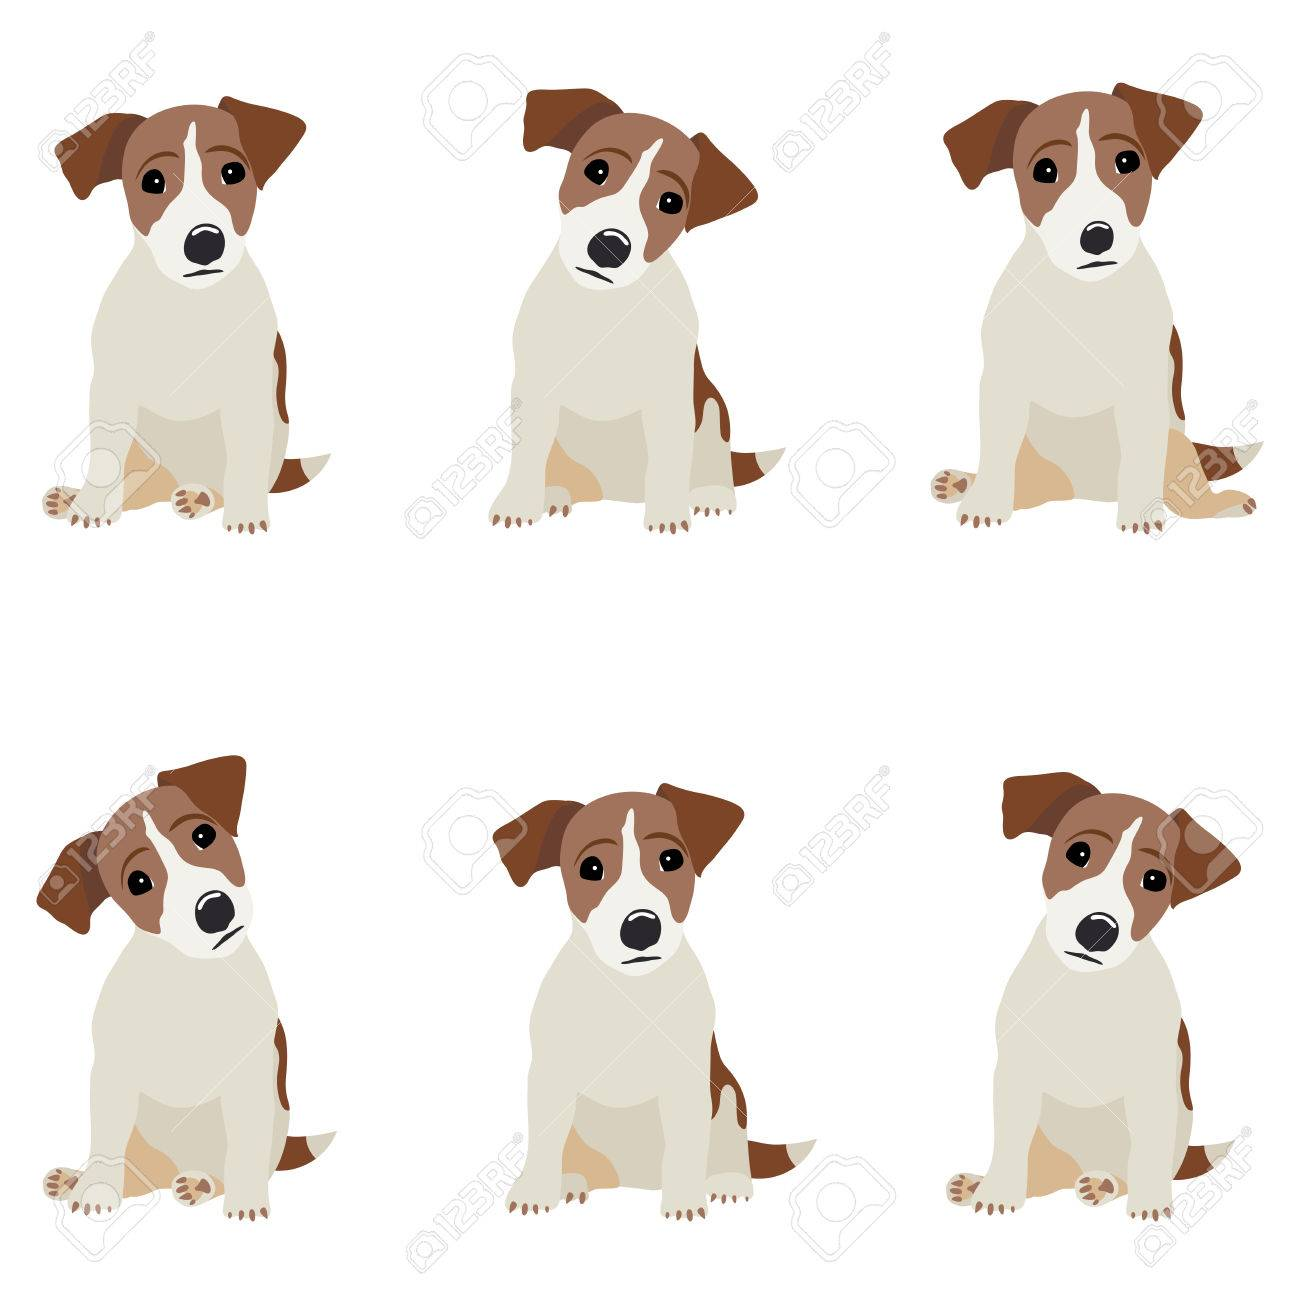 Jack Russell Terrier. Vector Illustration of a dog. - 69113401